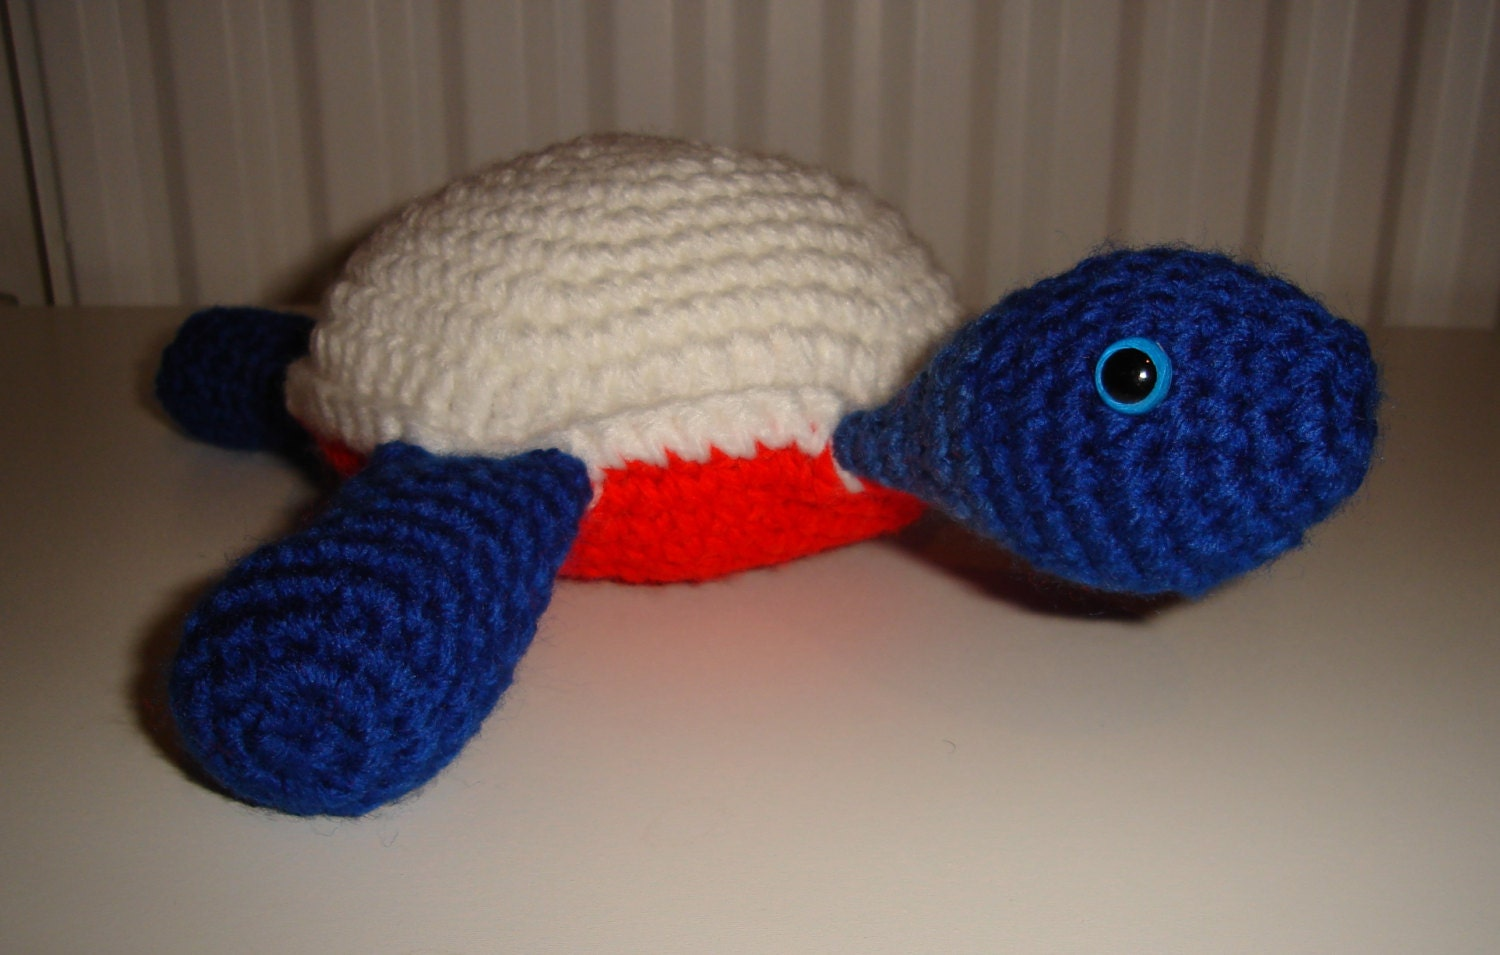 Turtle Tortoise Crochet Amigurumi Handmade Soft Toy in Red White and Blue